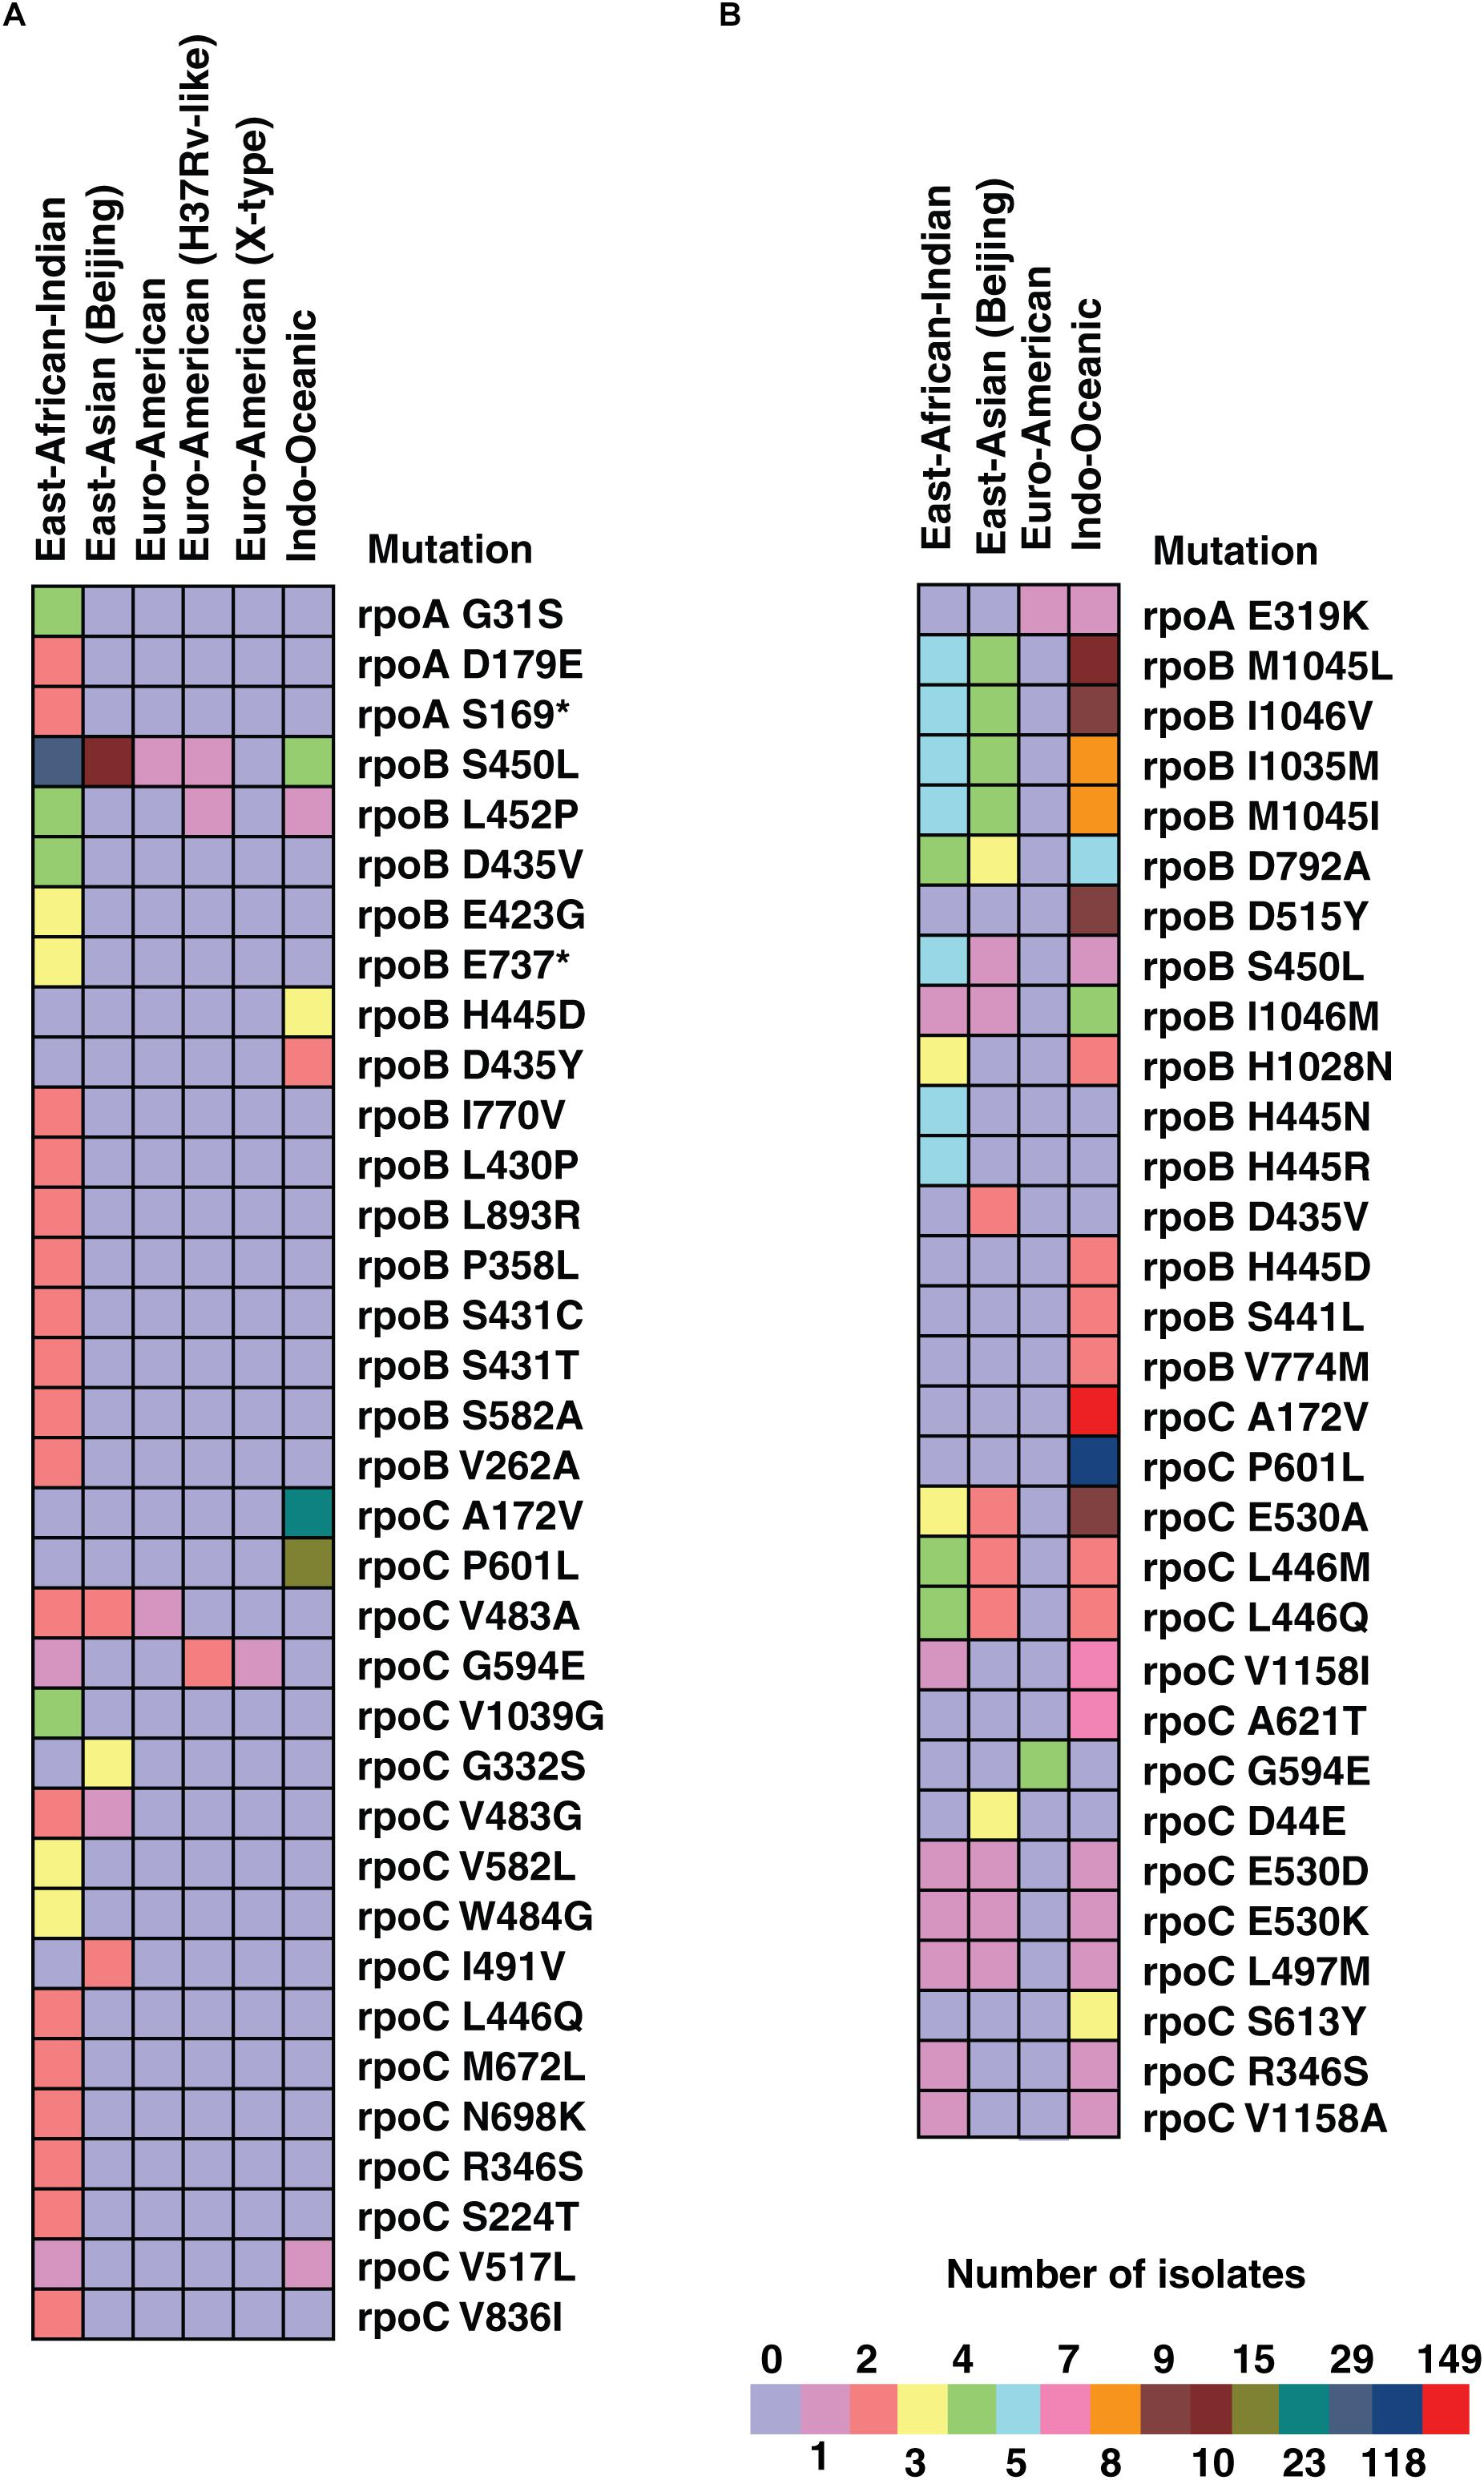 Frontiers | Whole Genome Sequencing of Mycobacterium